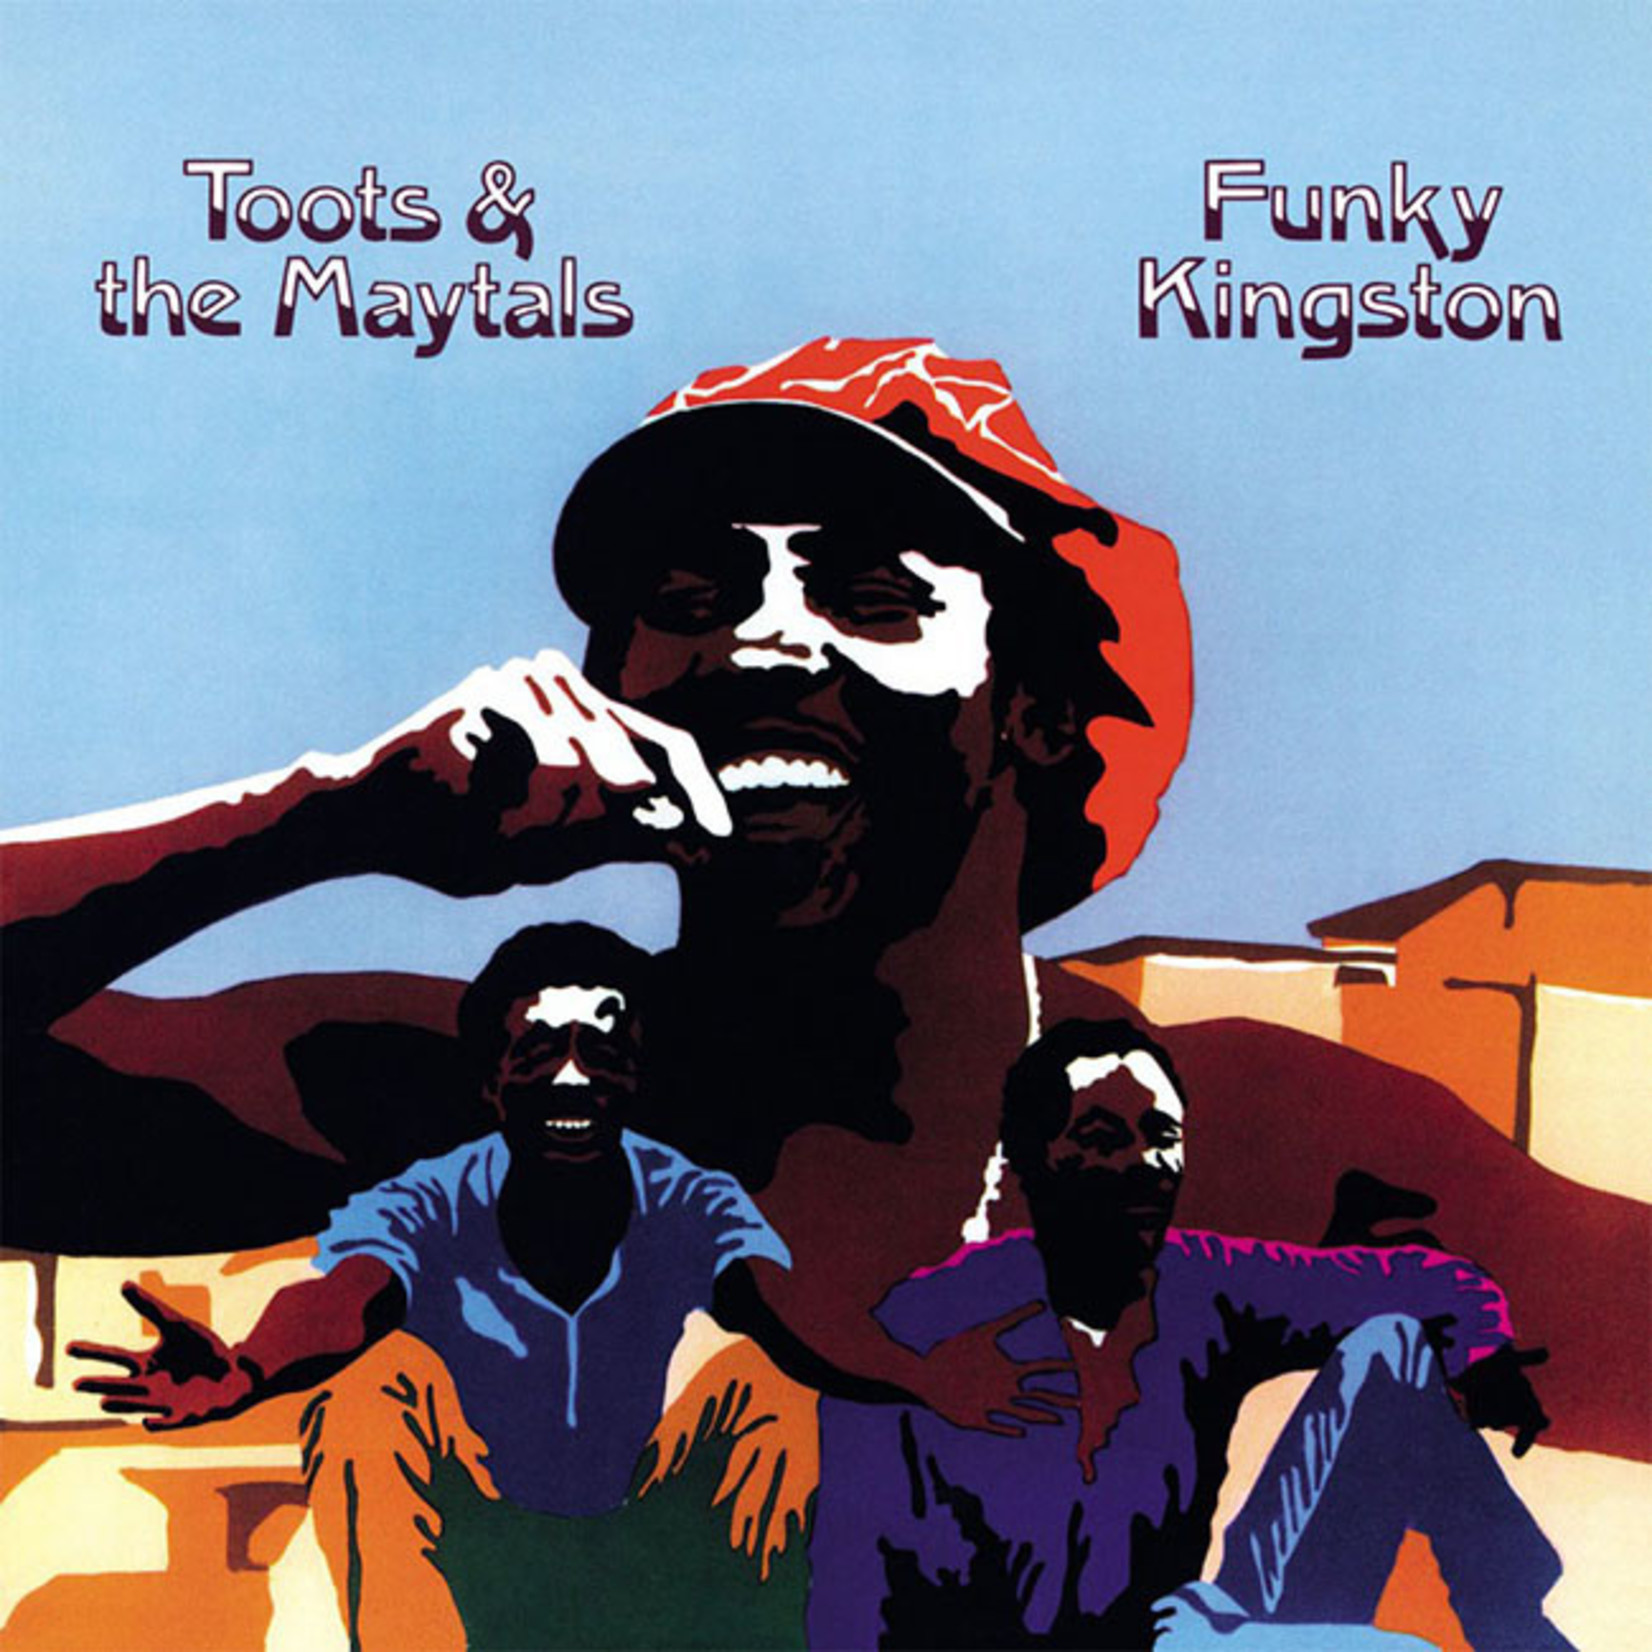 [New] Toots & the Maytals: Funky Kingston